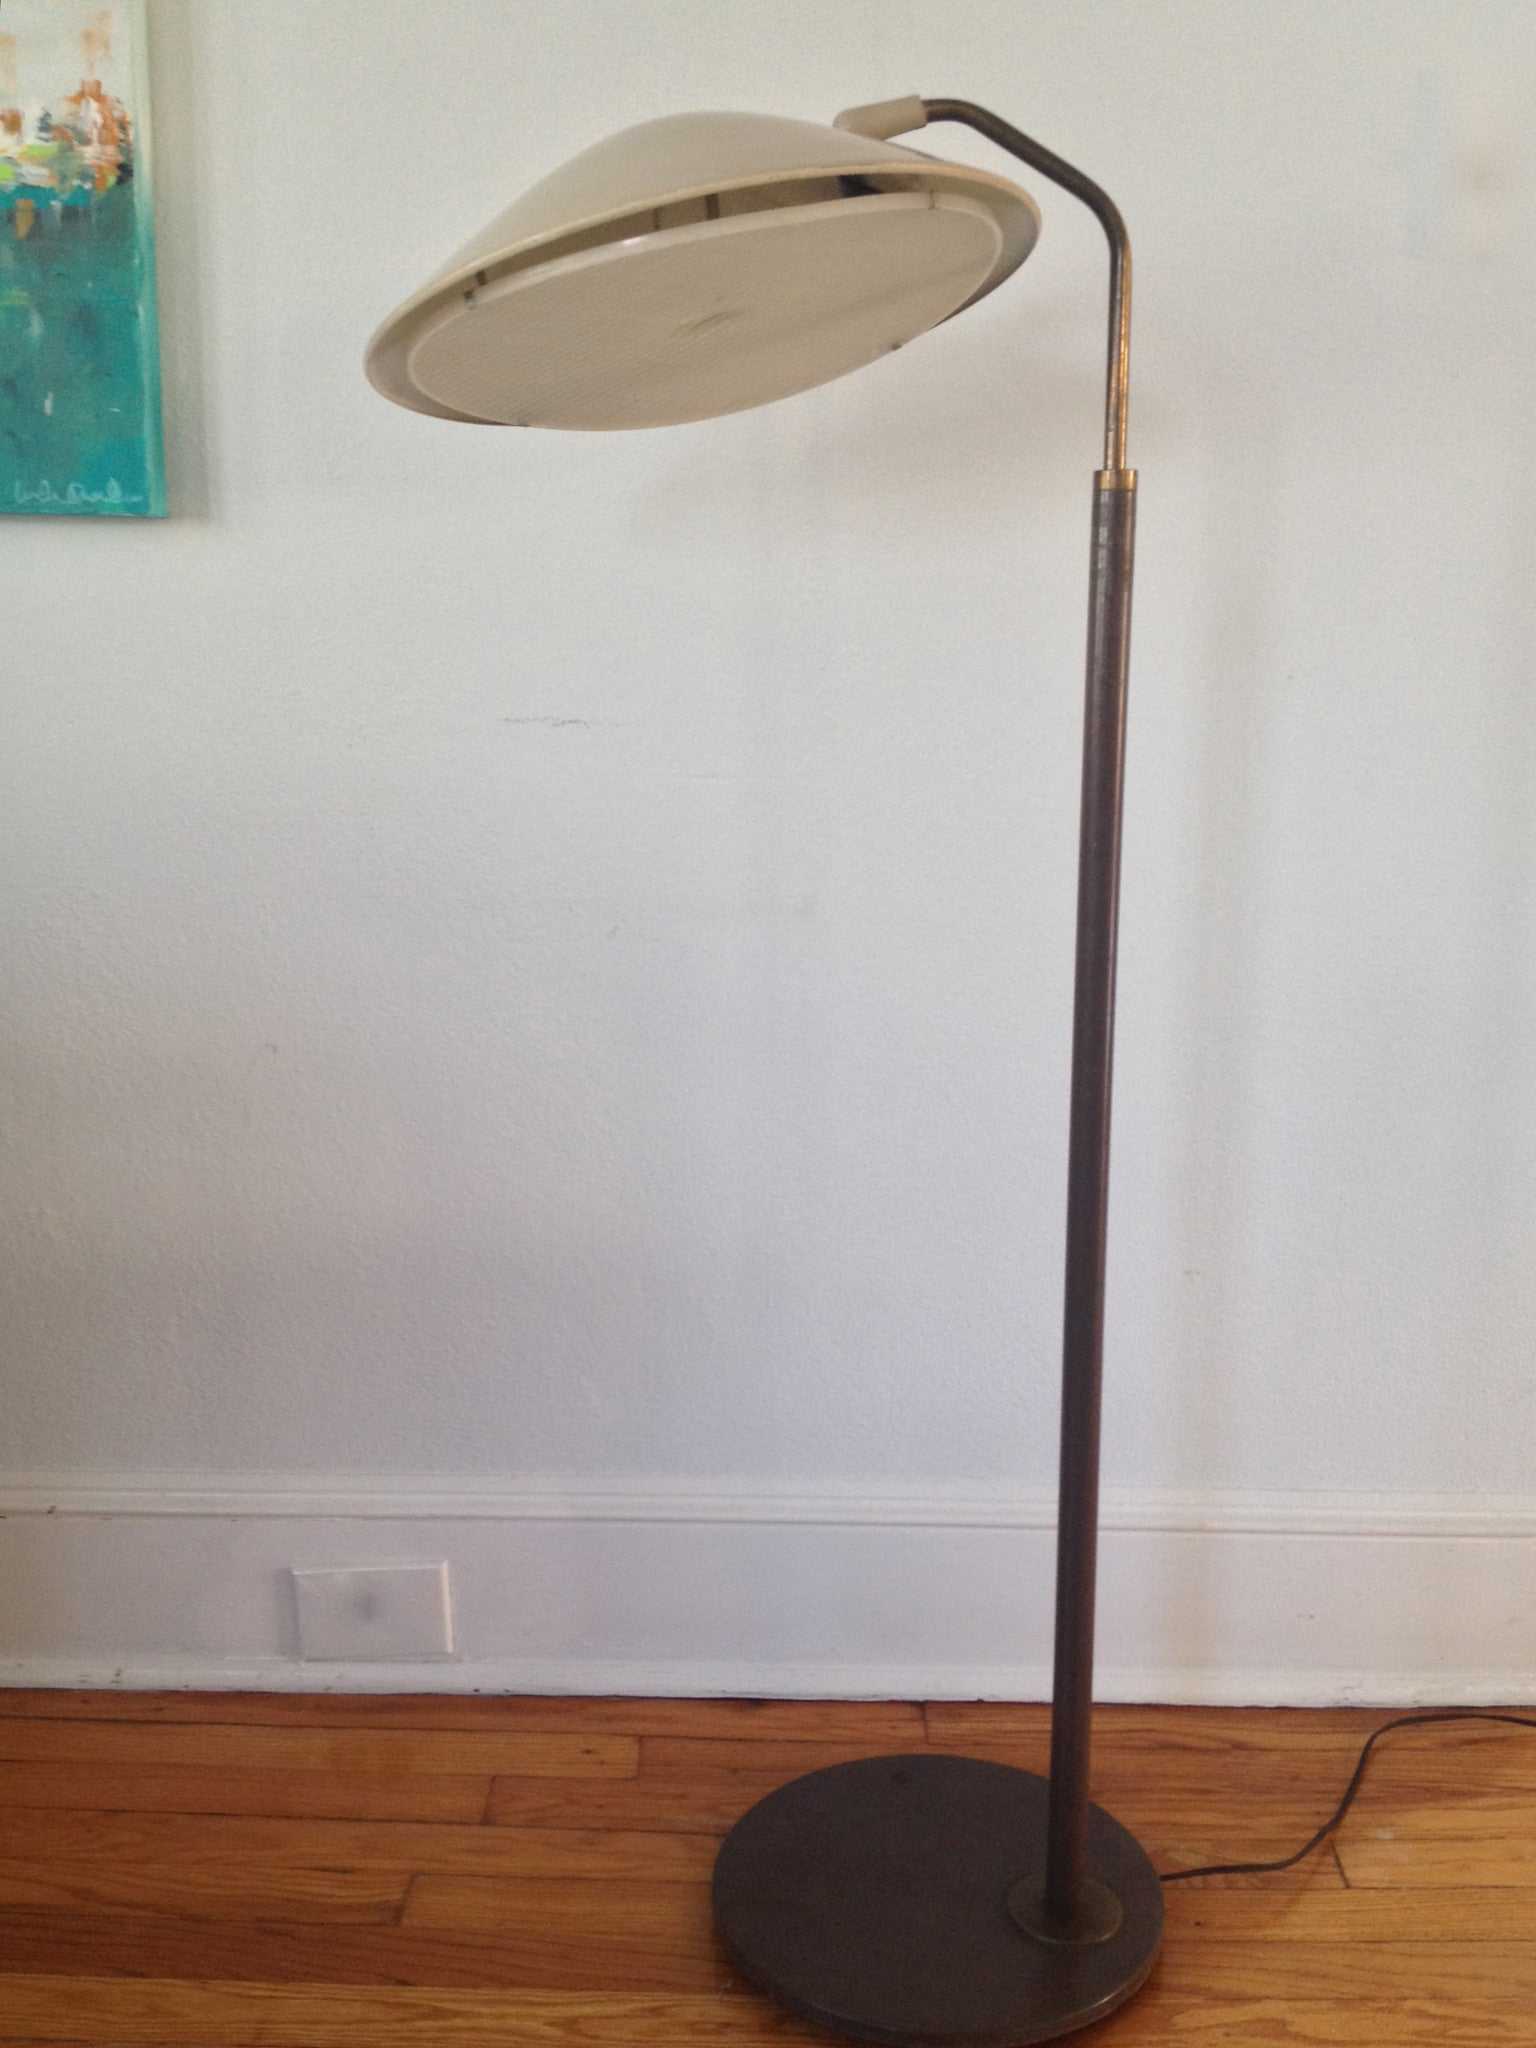 Vintage Gerald Thurston for Lightolier Floor Lamp - Barefoot Dwelling